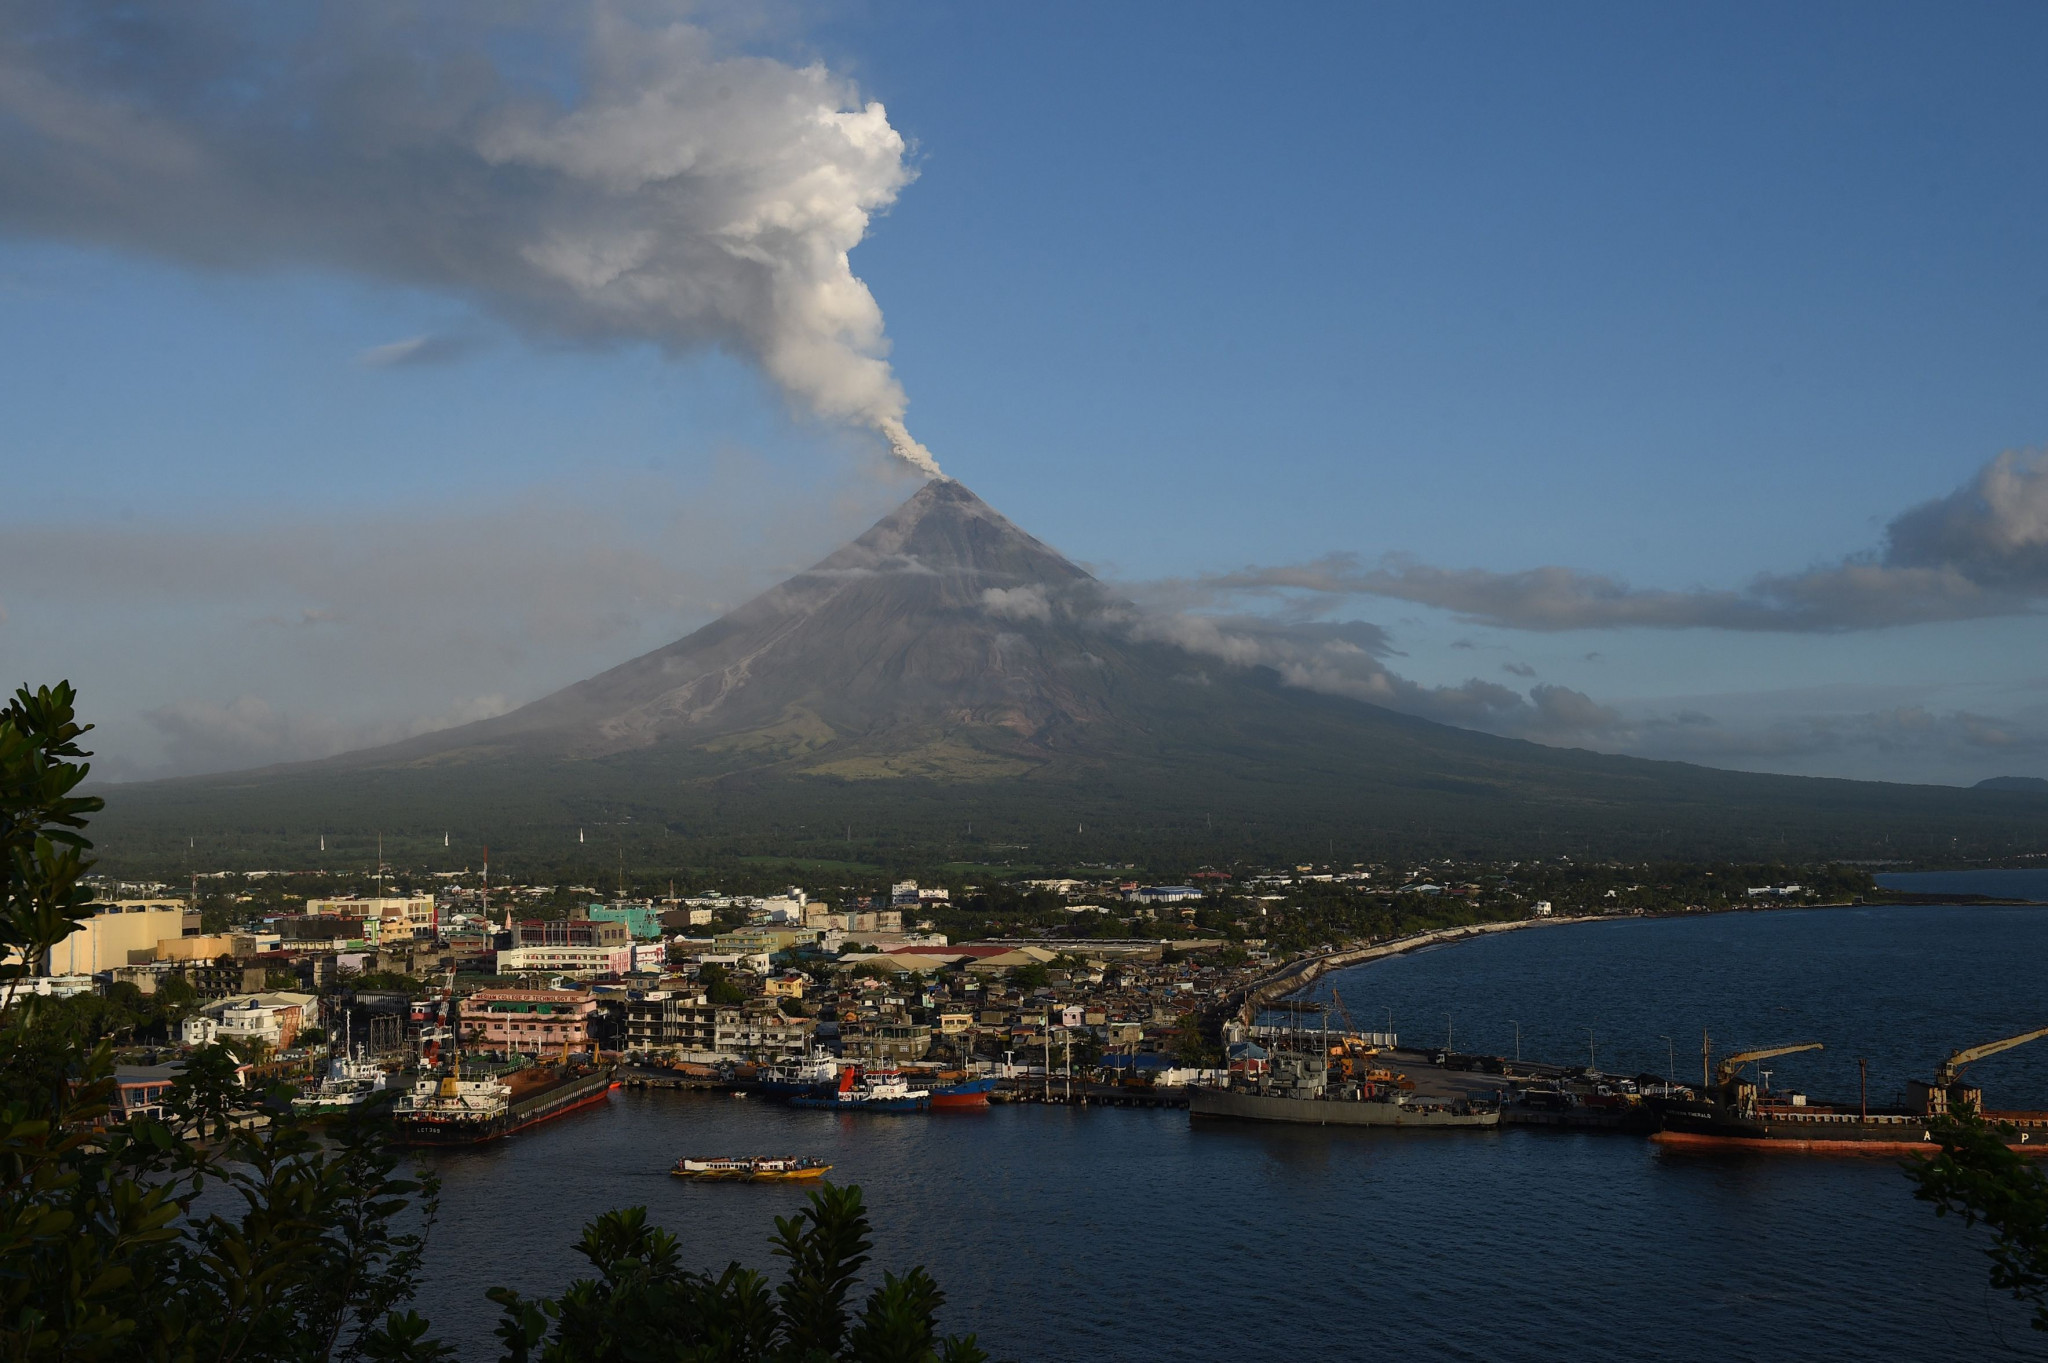 The event is due to be held in the city of Legazpi ©Getty Images